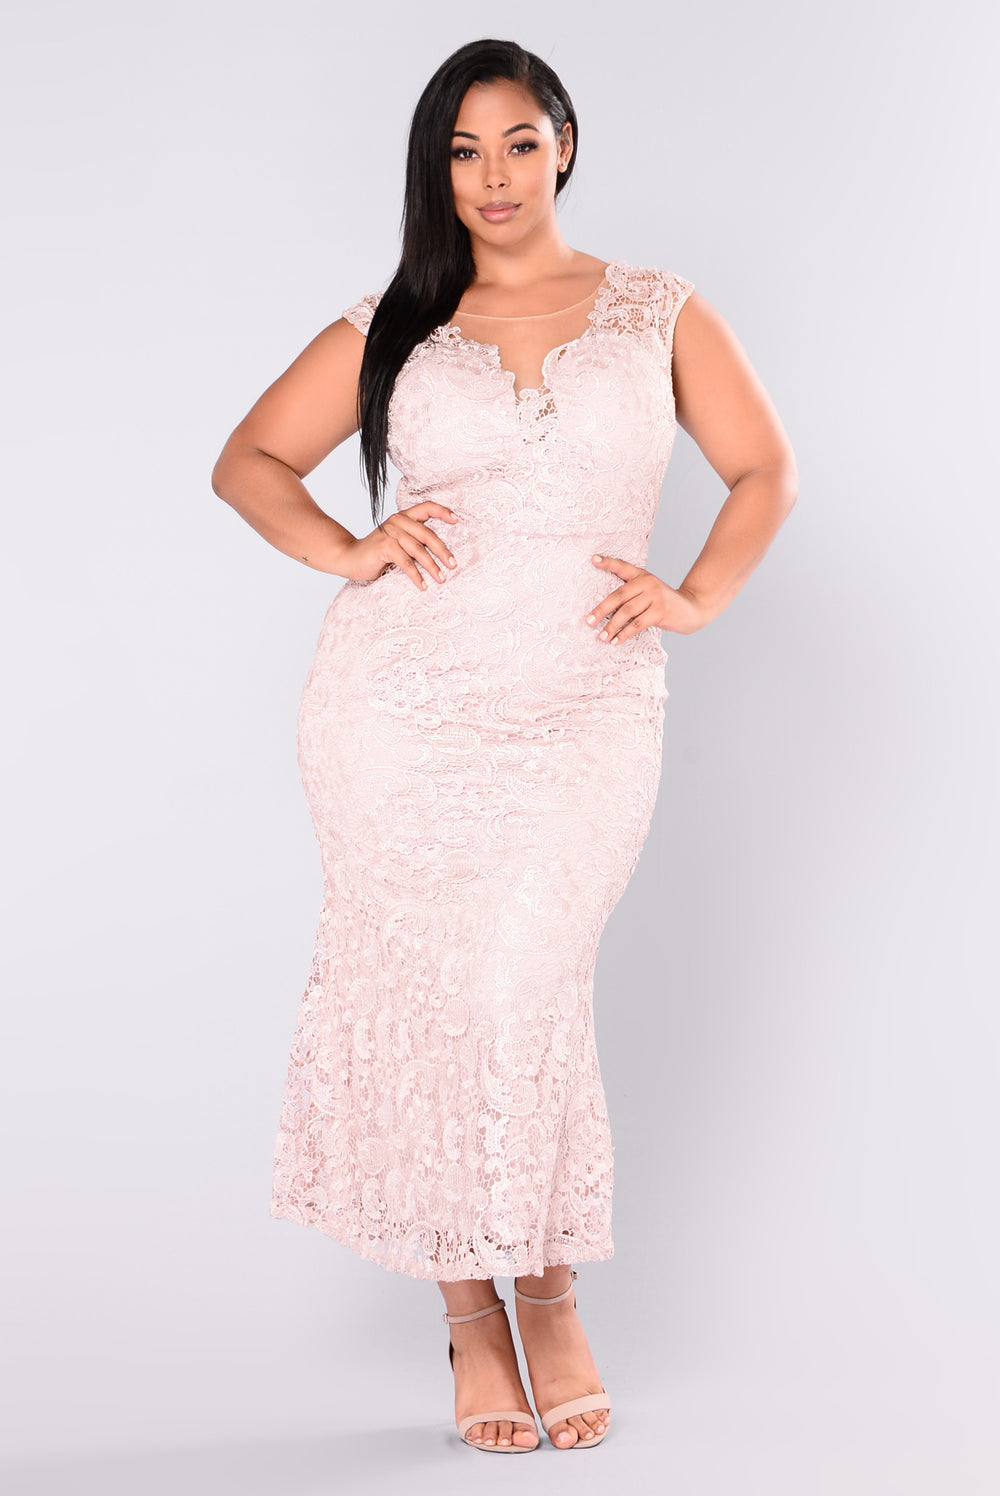 Whisper In My Ear Lace Dress - Rose